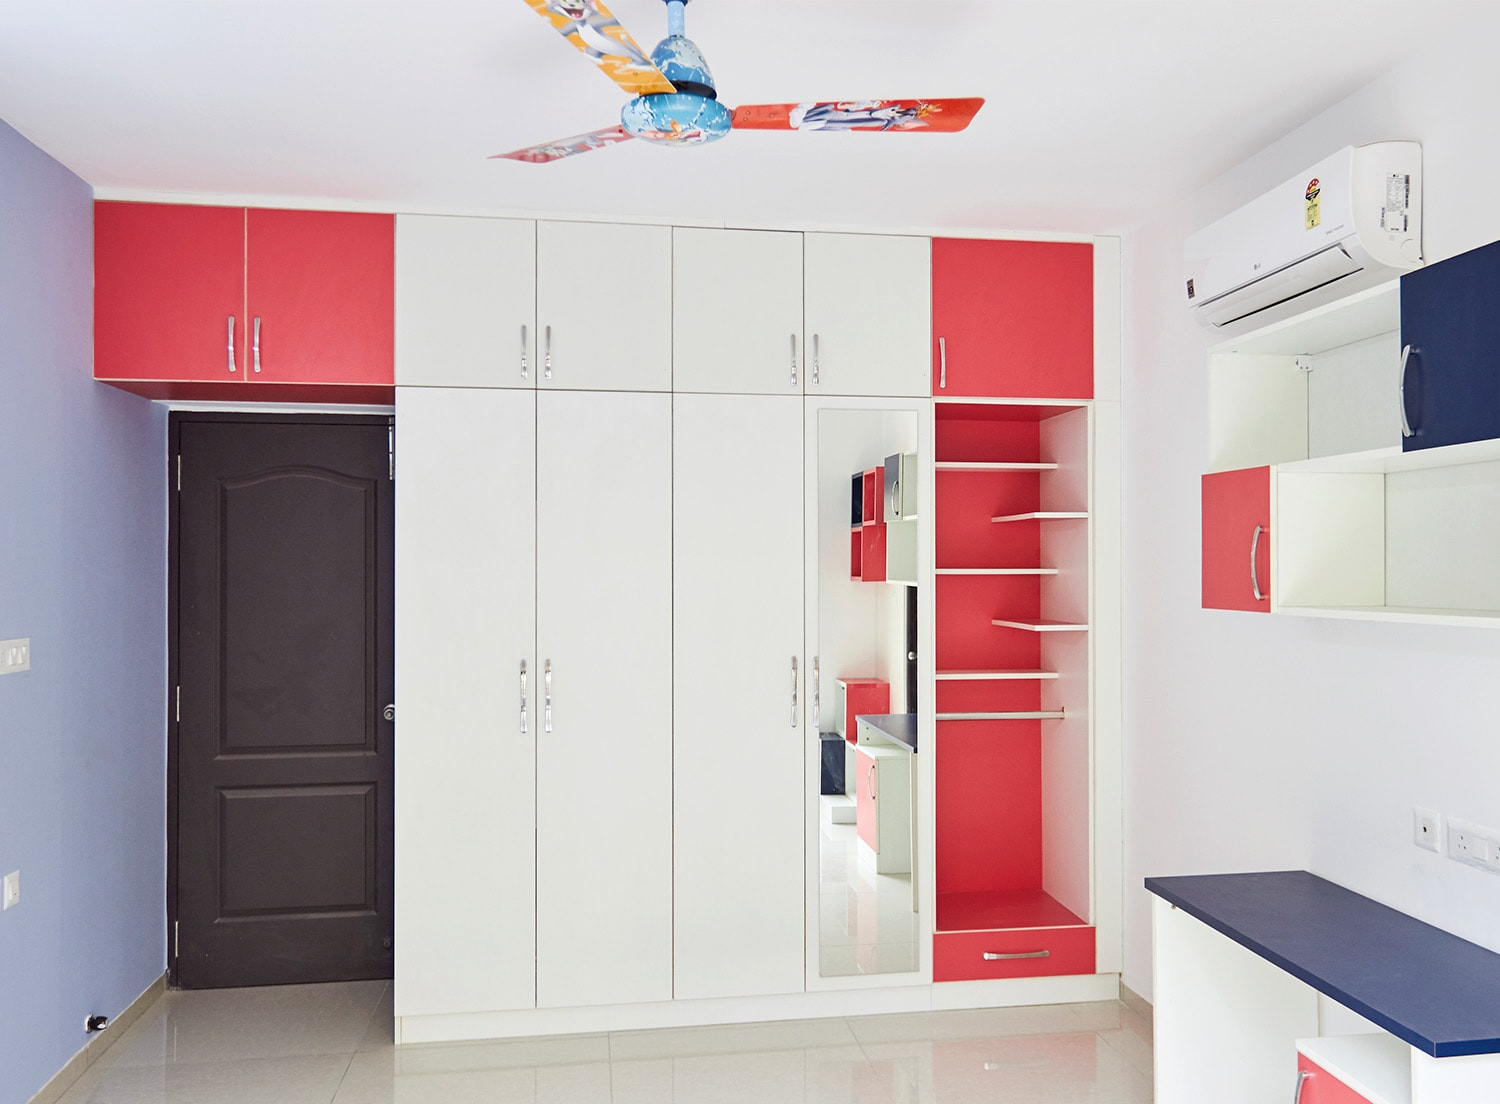 Kitchen cabinet doors in bangalore first time in india architect - Casa Grande Pallagio